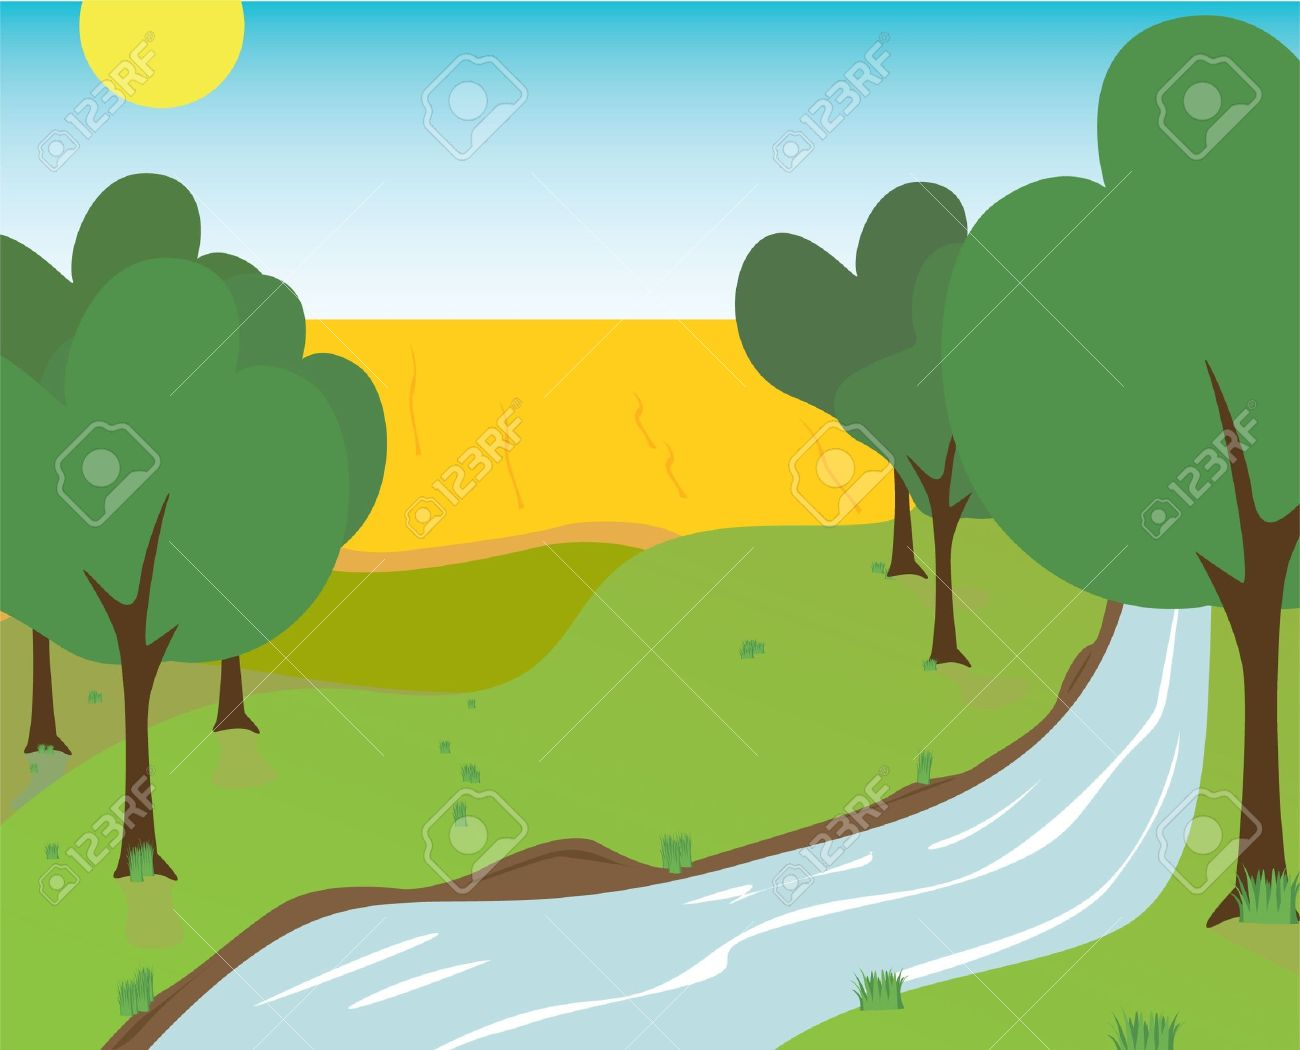 riverbank clipart clipart panda free clipart images